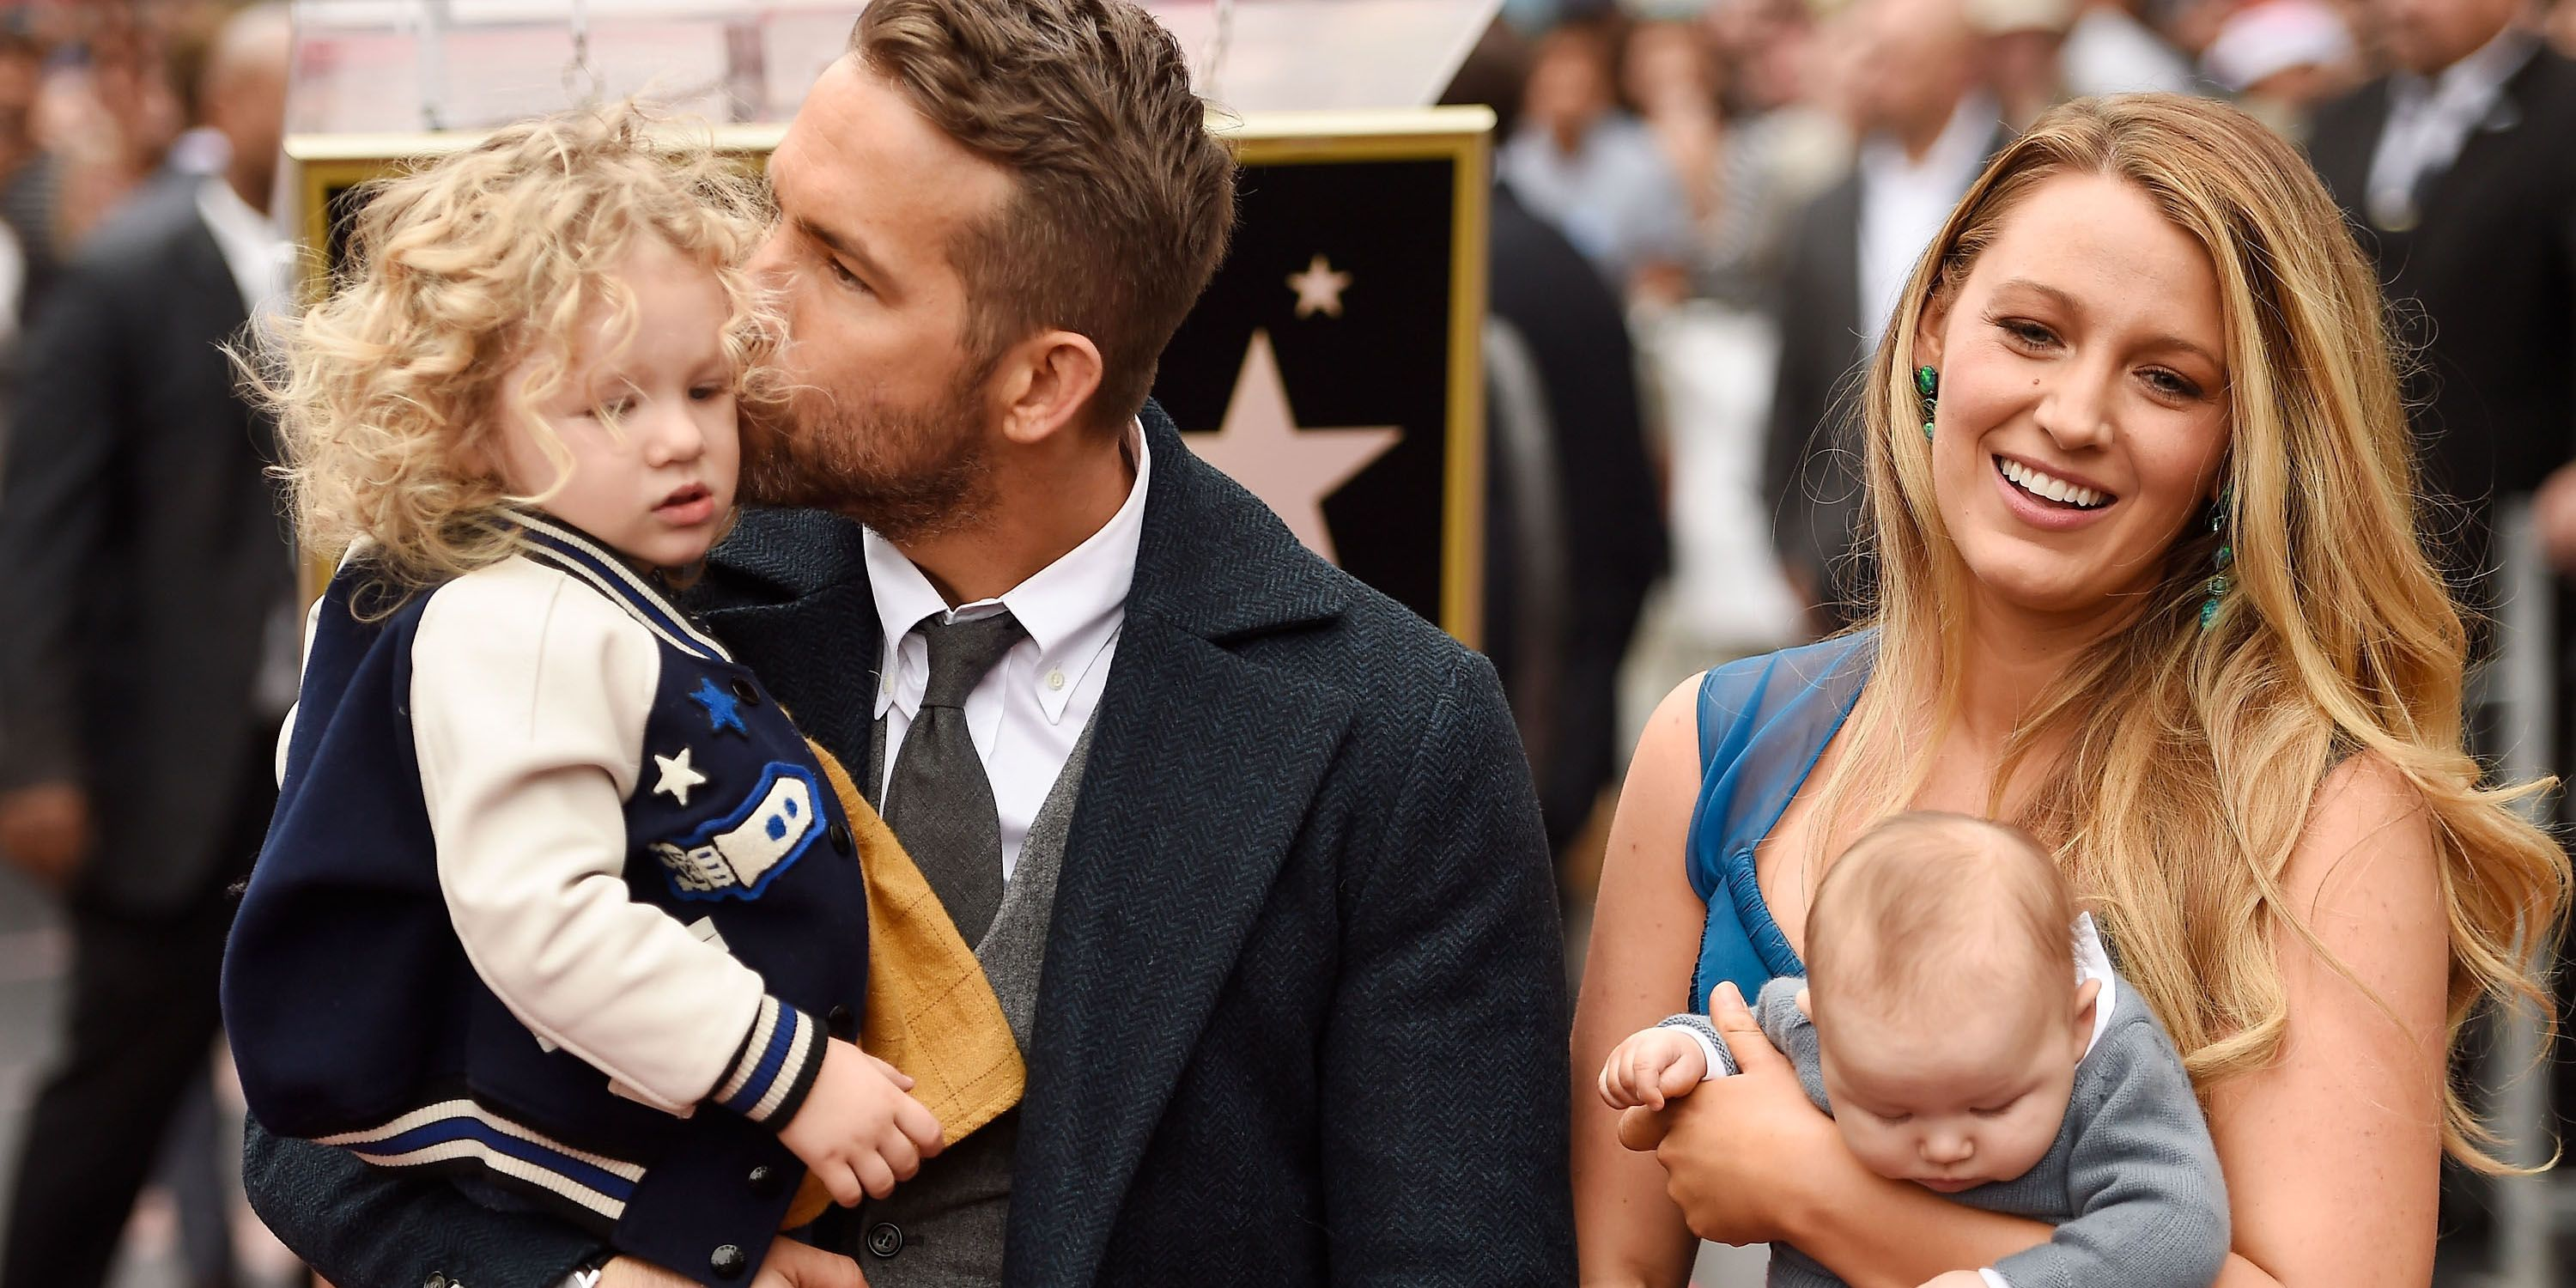 Blake Lively Brings Ryan Reynolds and Their Kids When She Travels to Film Movies